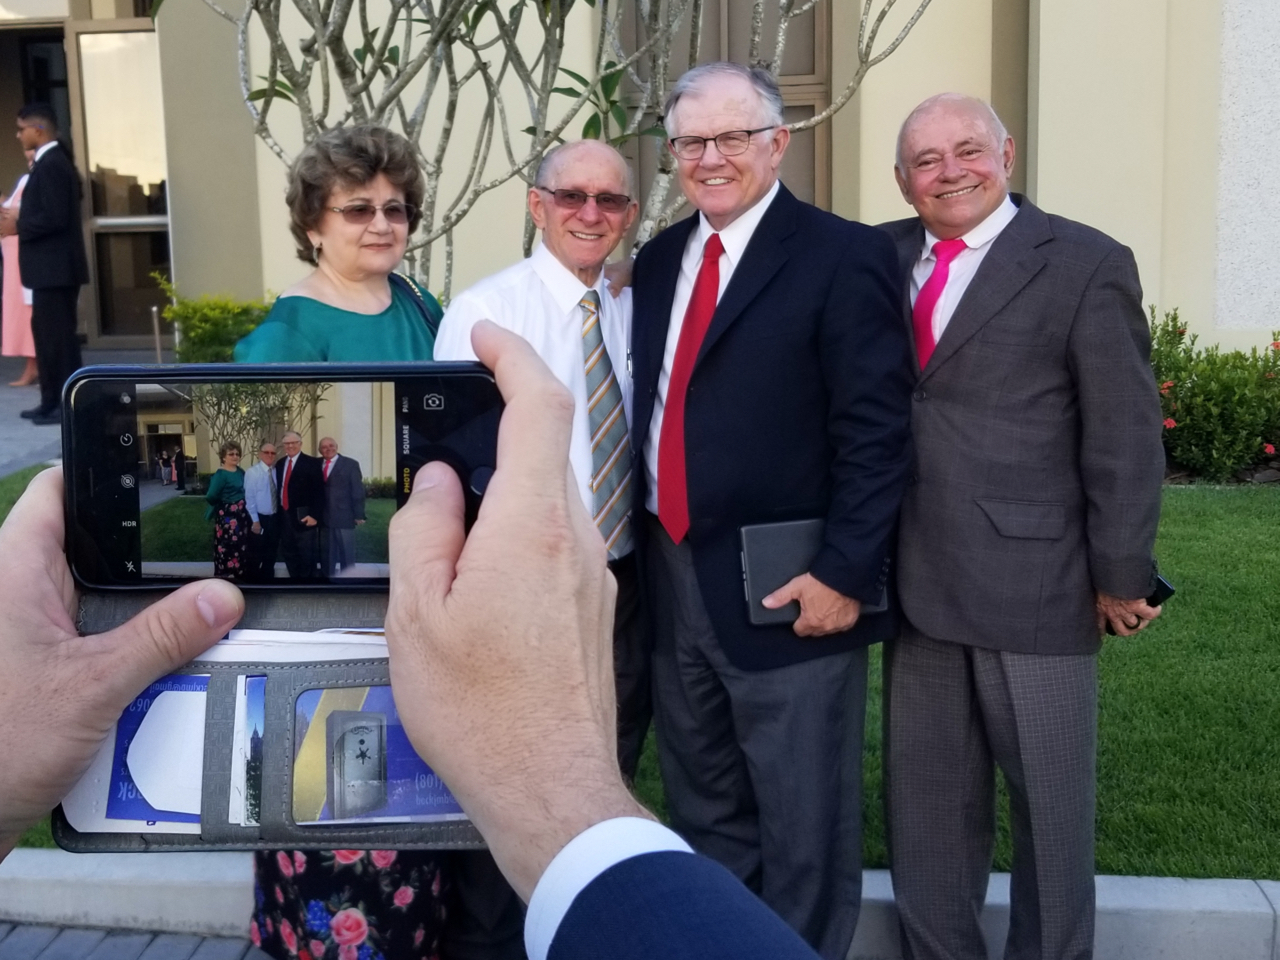 Pausing for a photo by a family member are, from left, Maria Cintra, Lino Cintra, John M. Beck, and Antonio Ferreira on June 1, 2019, outside the stake center on the grounds of the Fortaleza Brazil Temple. The Cintras and Ferreiras were among the first converts baptized in Fortaleza, in 1966, with Beck among the four missionaries who taught them.